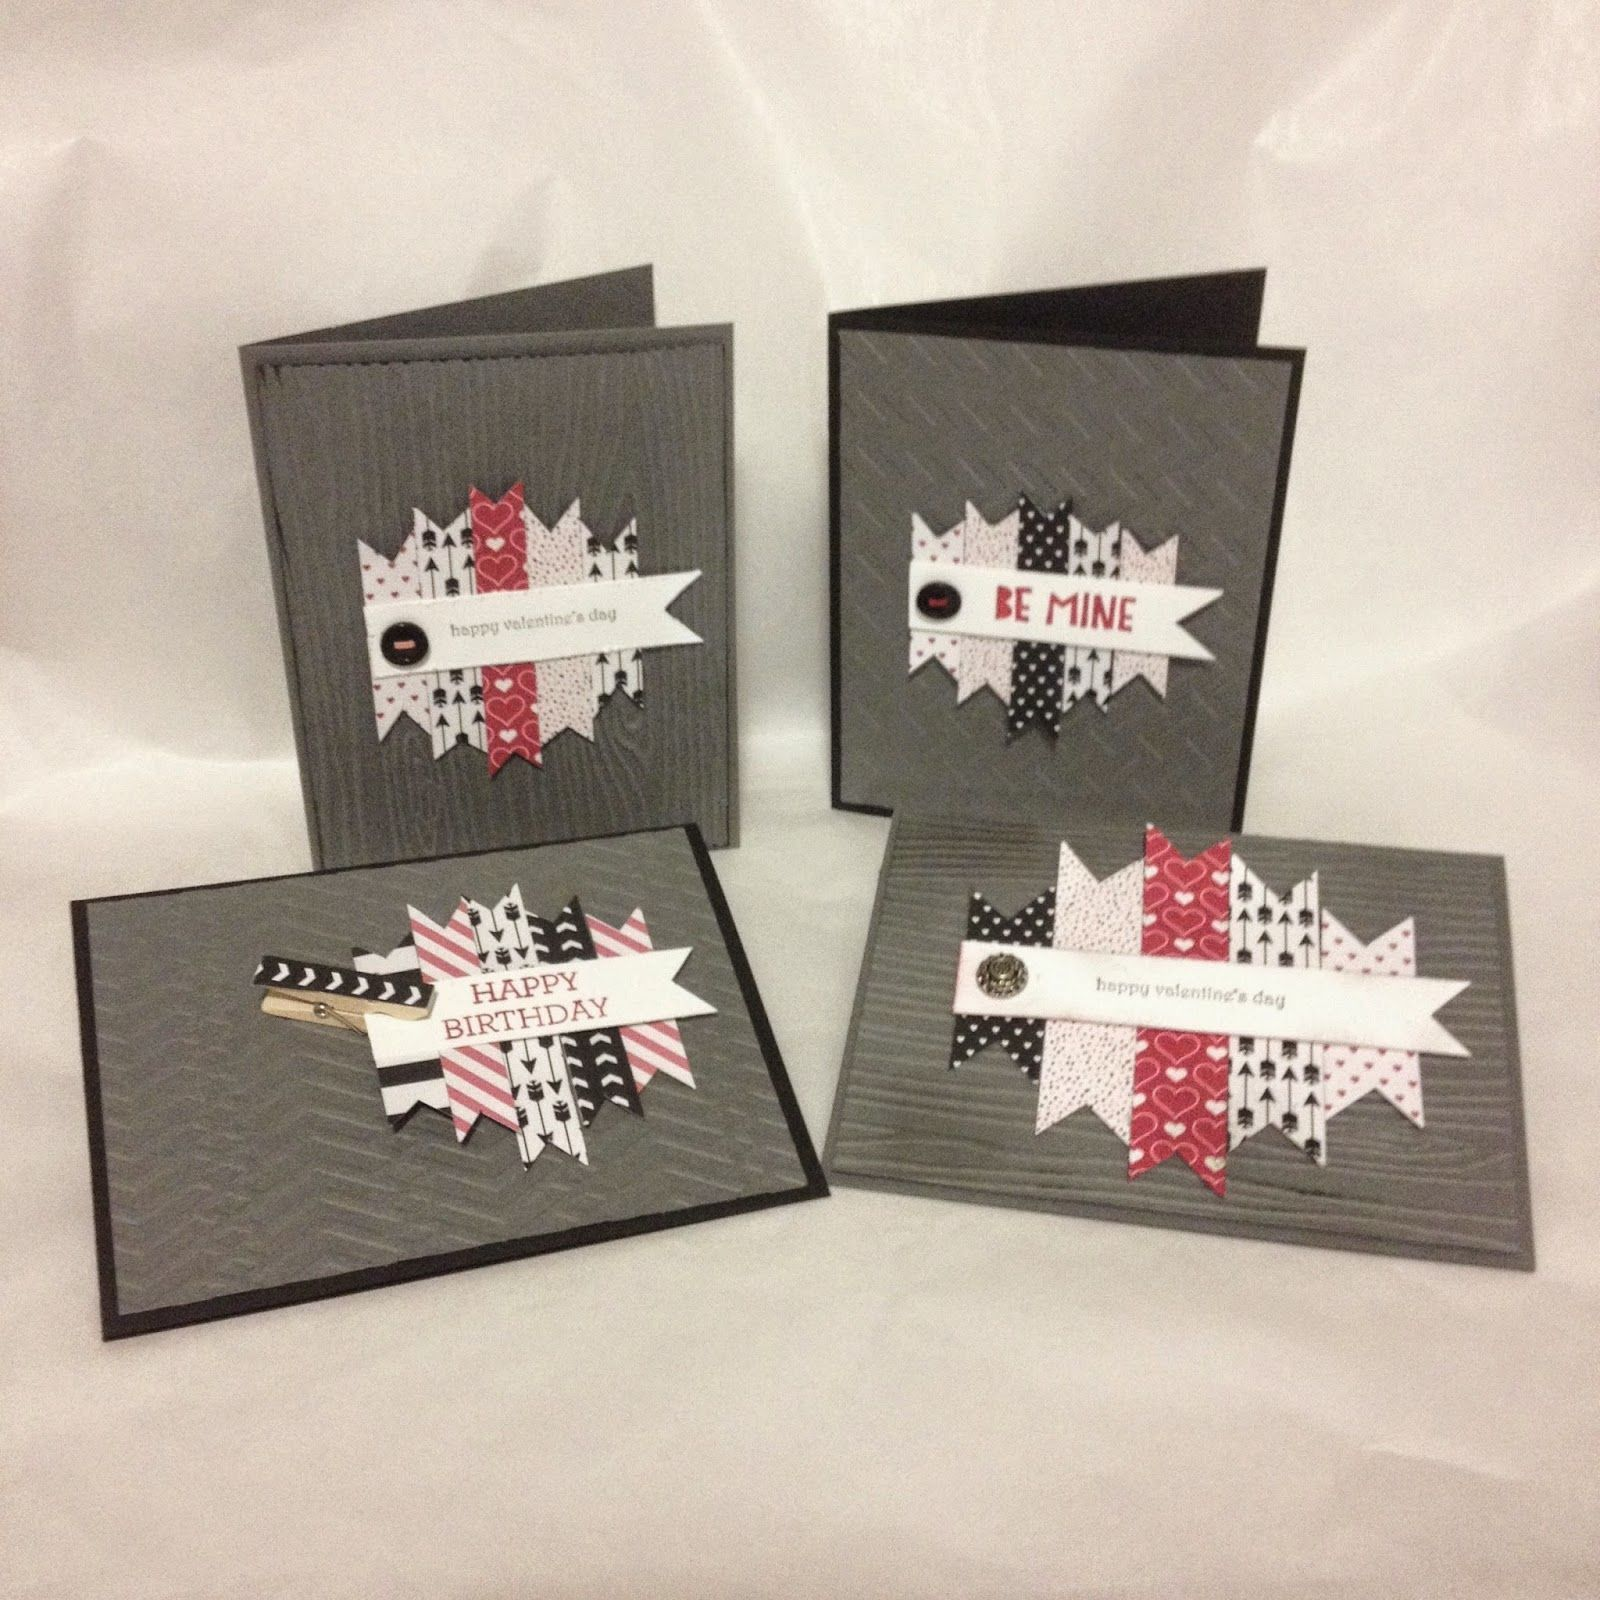 Nice Masculine Card Making Ideas Part - 7: Image Result For Masculine Cards Ideas